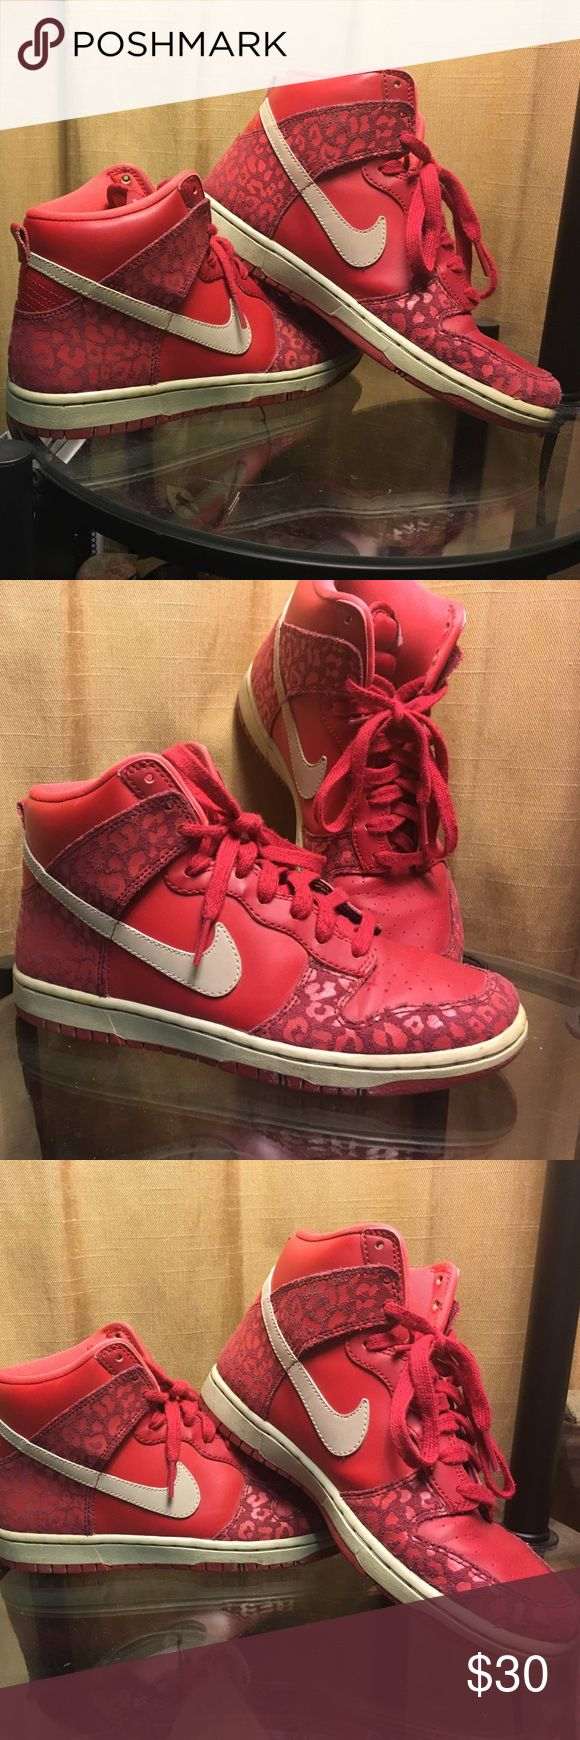 Nike shoes- red high tops for women - red high top Nike shoes for women . Sz 6. Have a bit of a cheetah print as shown in picture. They are in good condition. Nike Shoes Sneakers